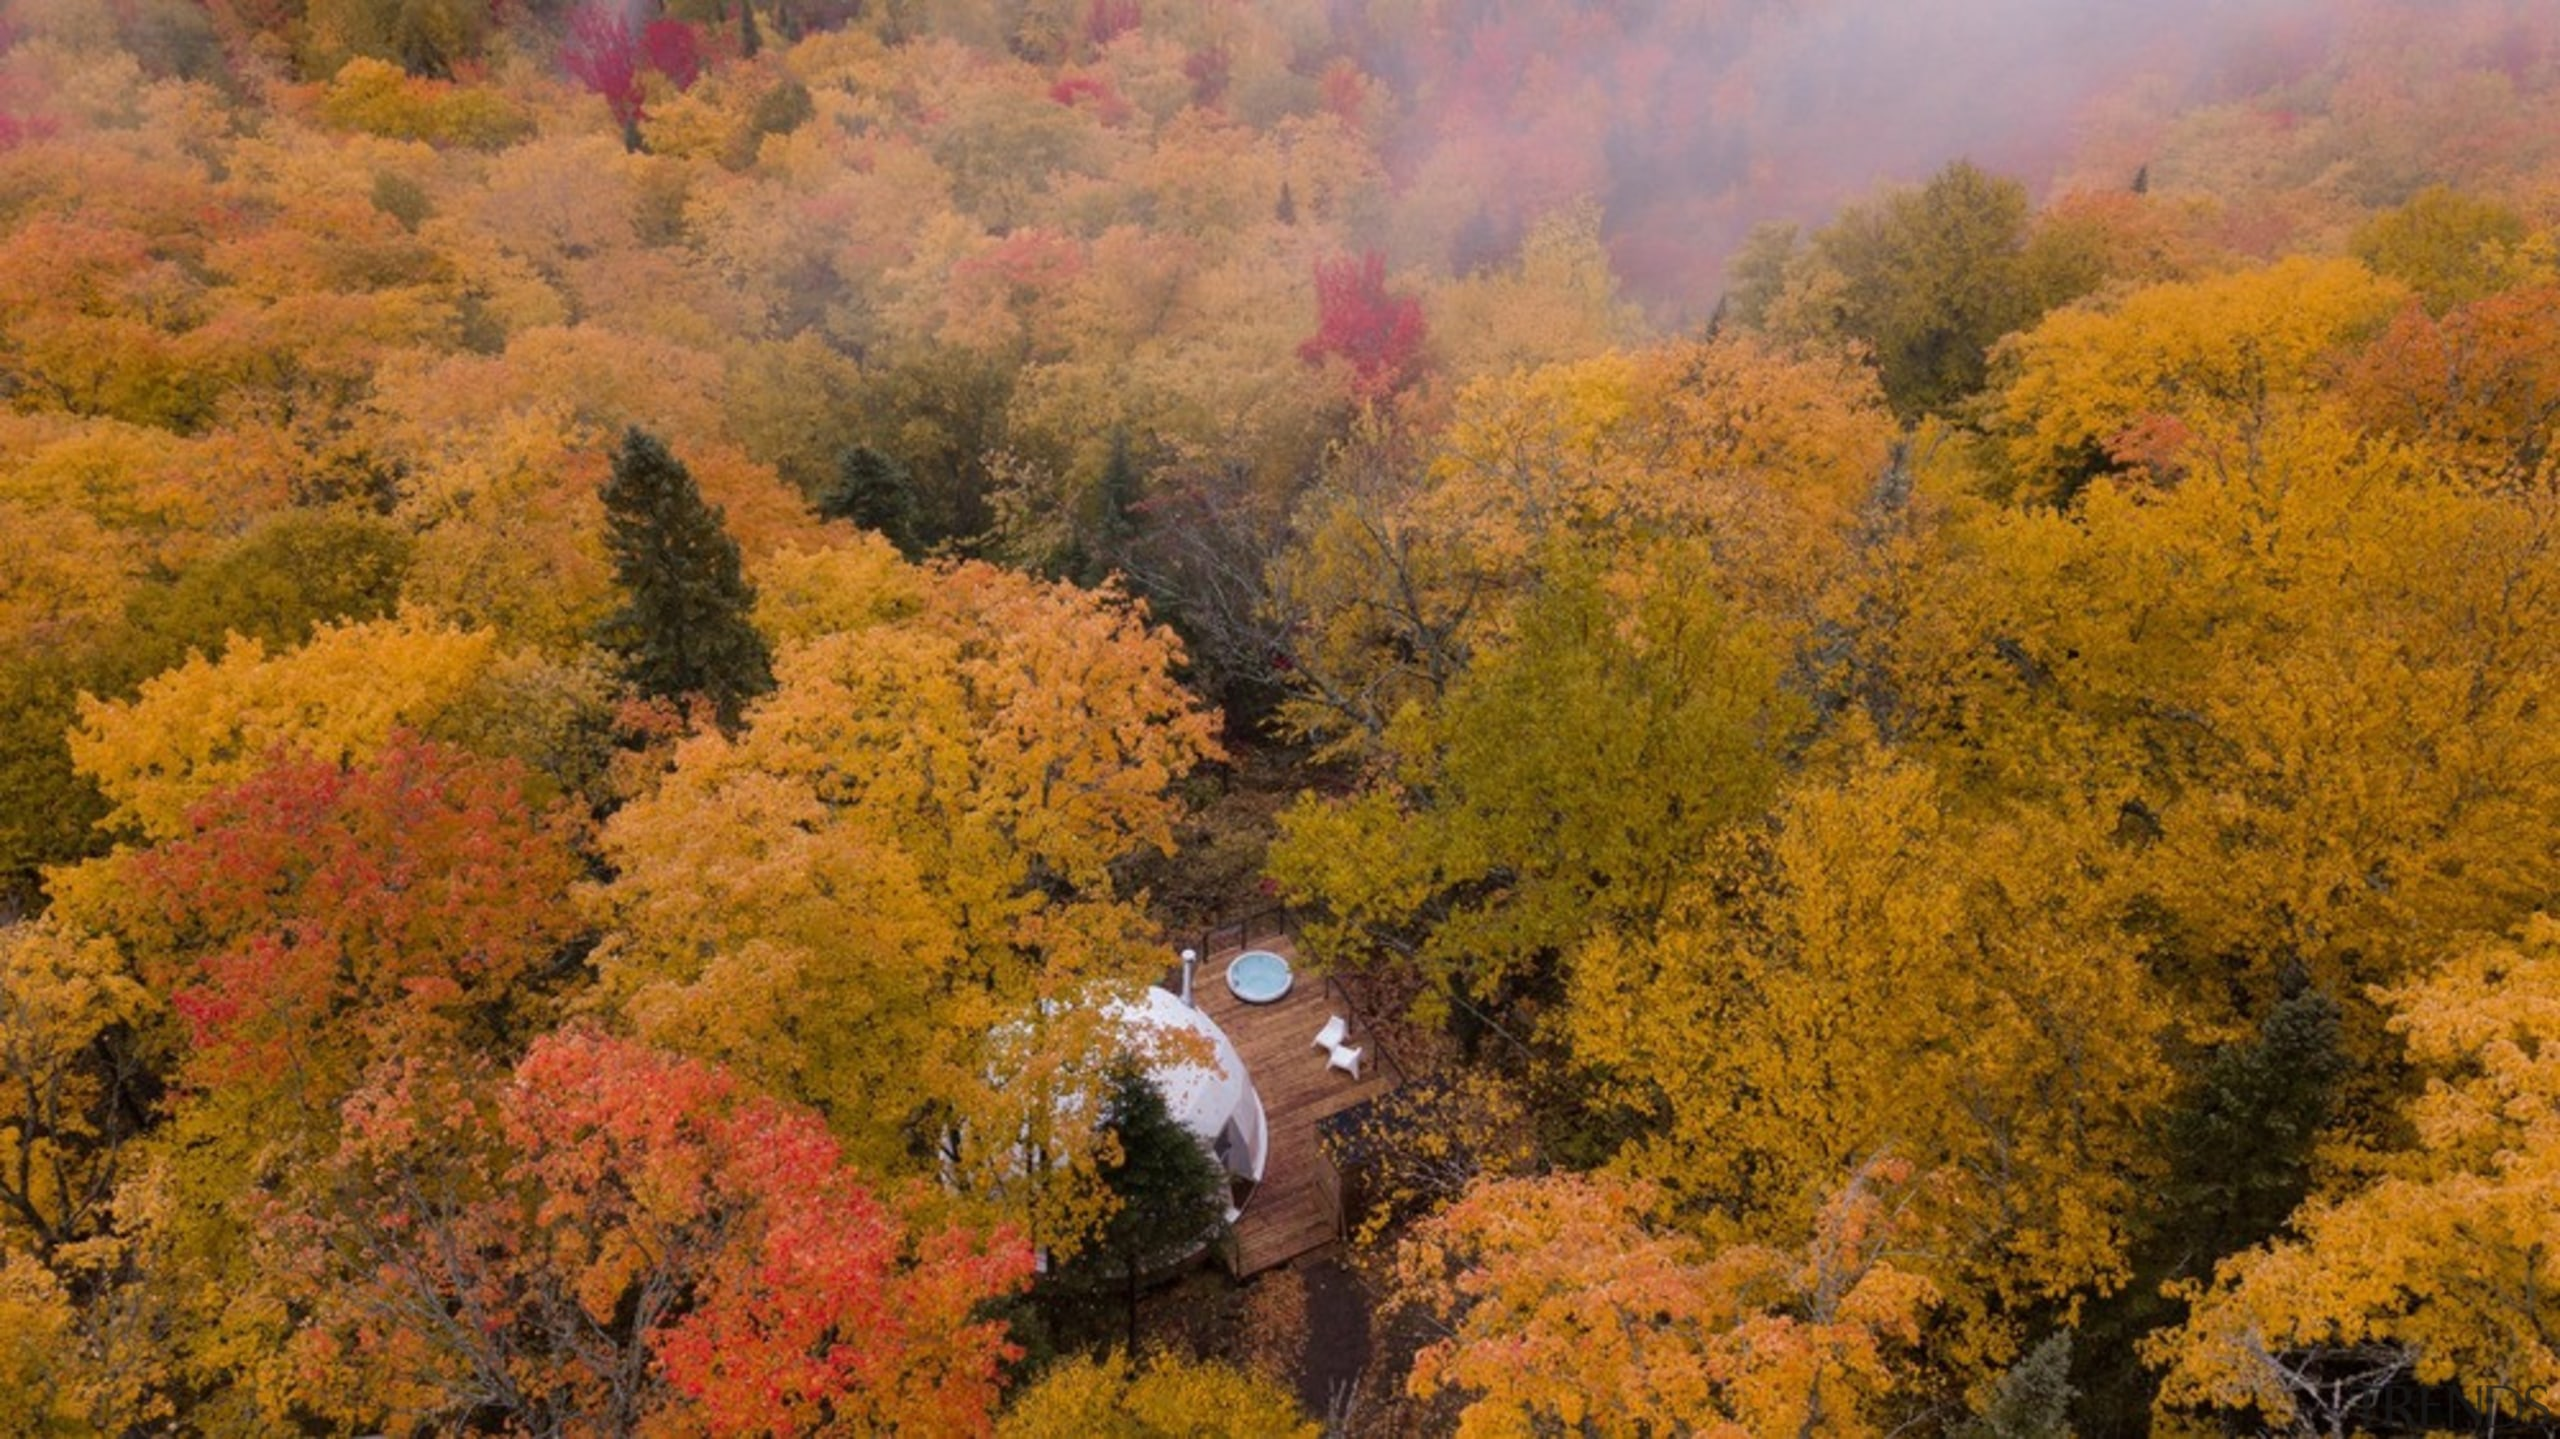 Dome 4 - autumn | biome | deciduous autumn, biome, deciduous, forest, landscape, leaf, national park, nature, sky, temperate broadleaf and mixed forest, tree, wilderness, brown